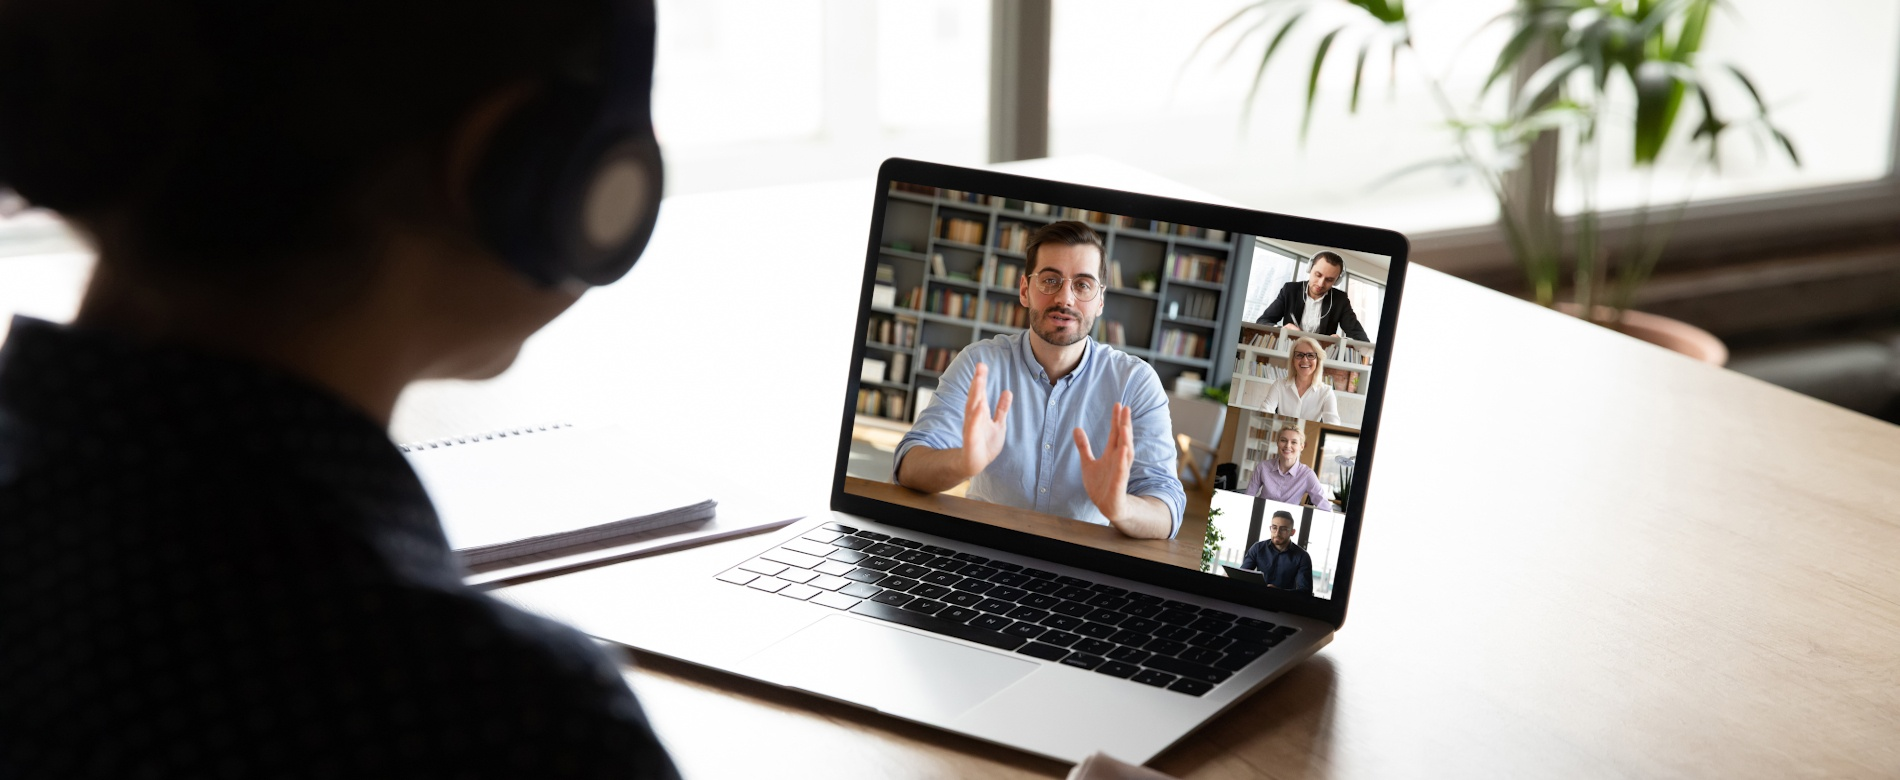 E-learning via virtual application, videocall video conferencing activity, colleagues working together concept. Pc screen view over woman shoulder, listen tutor gain new knowledge noting information